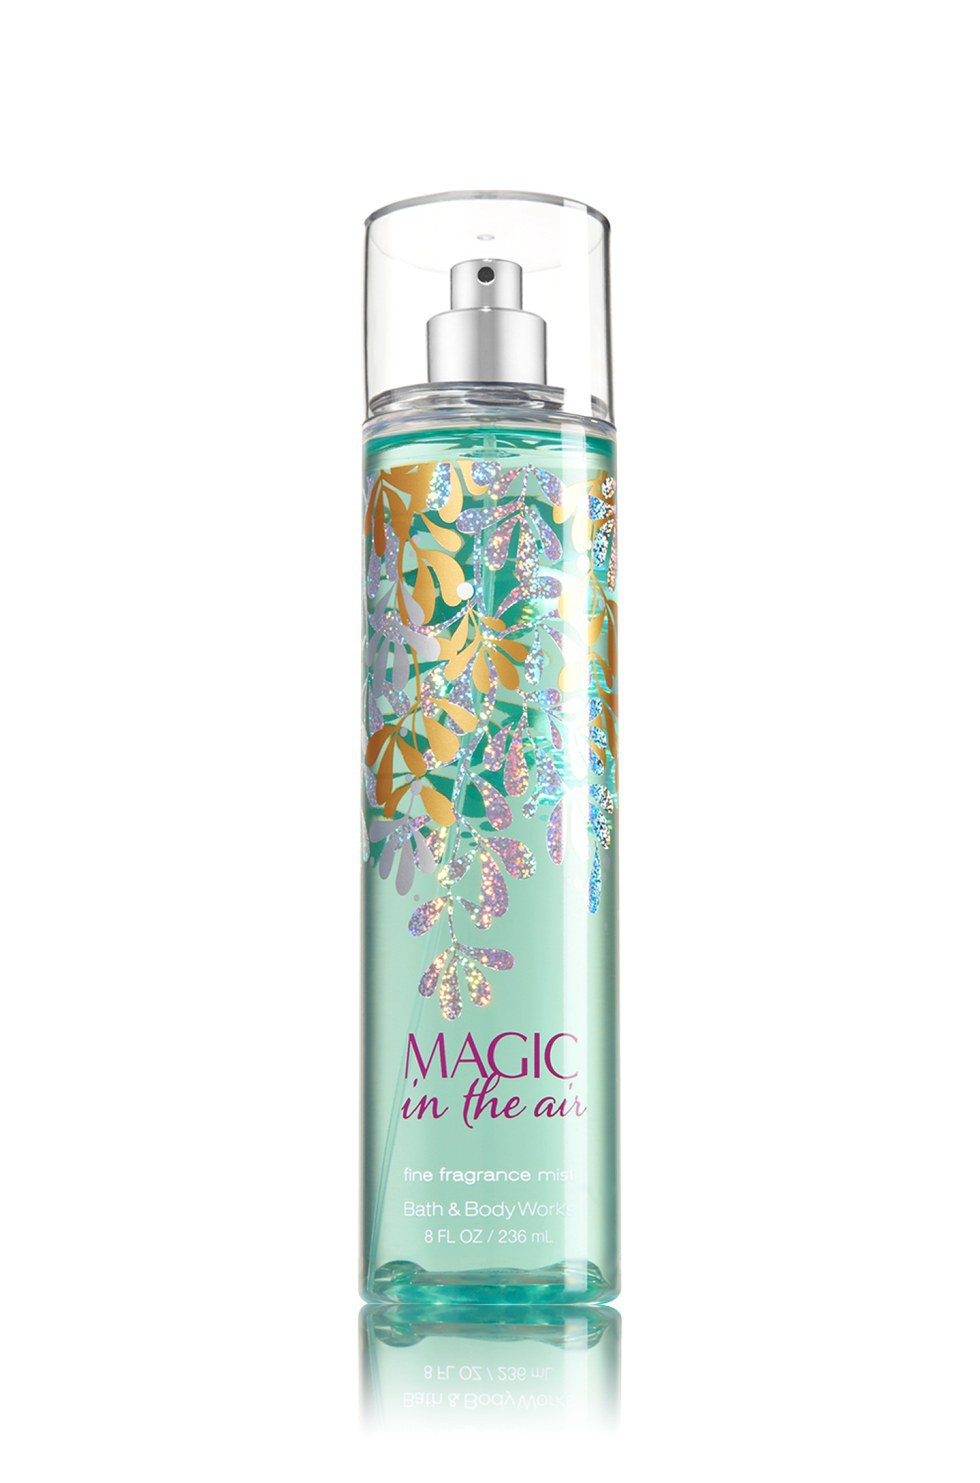 Bath and body works holiday scents - This Is A Damn Good New Scent It S Coconut Y But Also Floral And Fruity Again With A Musky Dry Note It S Strangely Appealing And I Kept On Spraying This